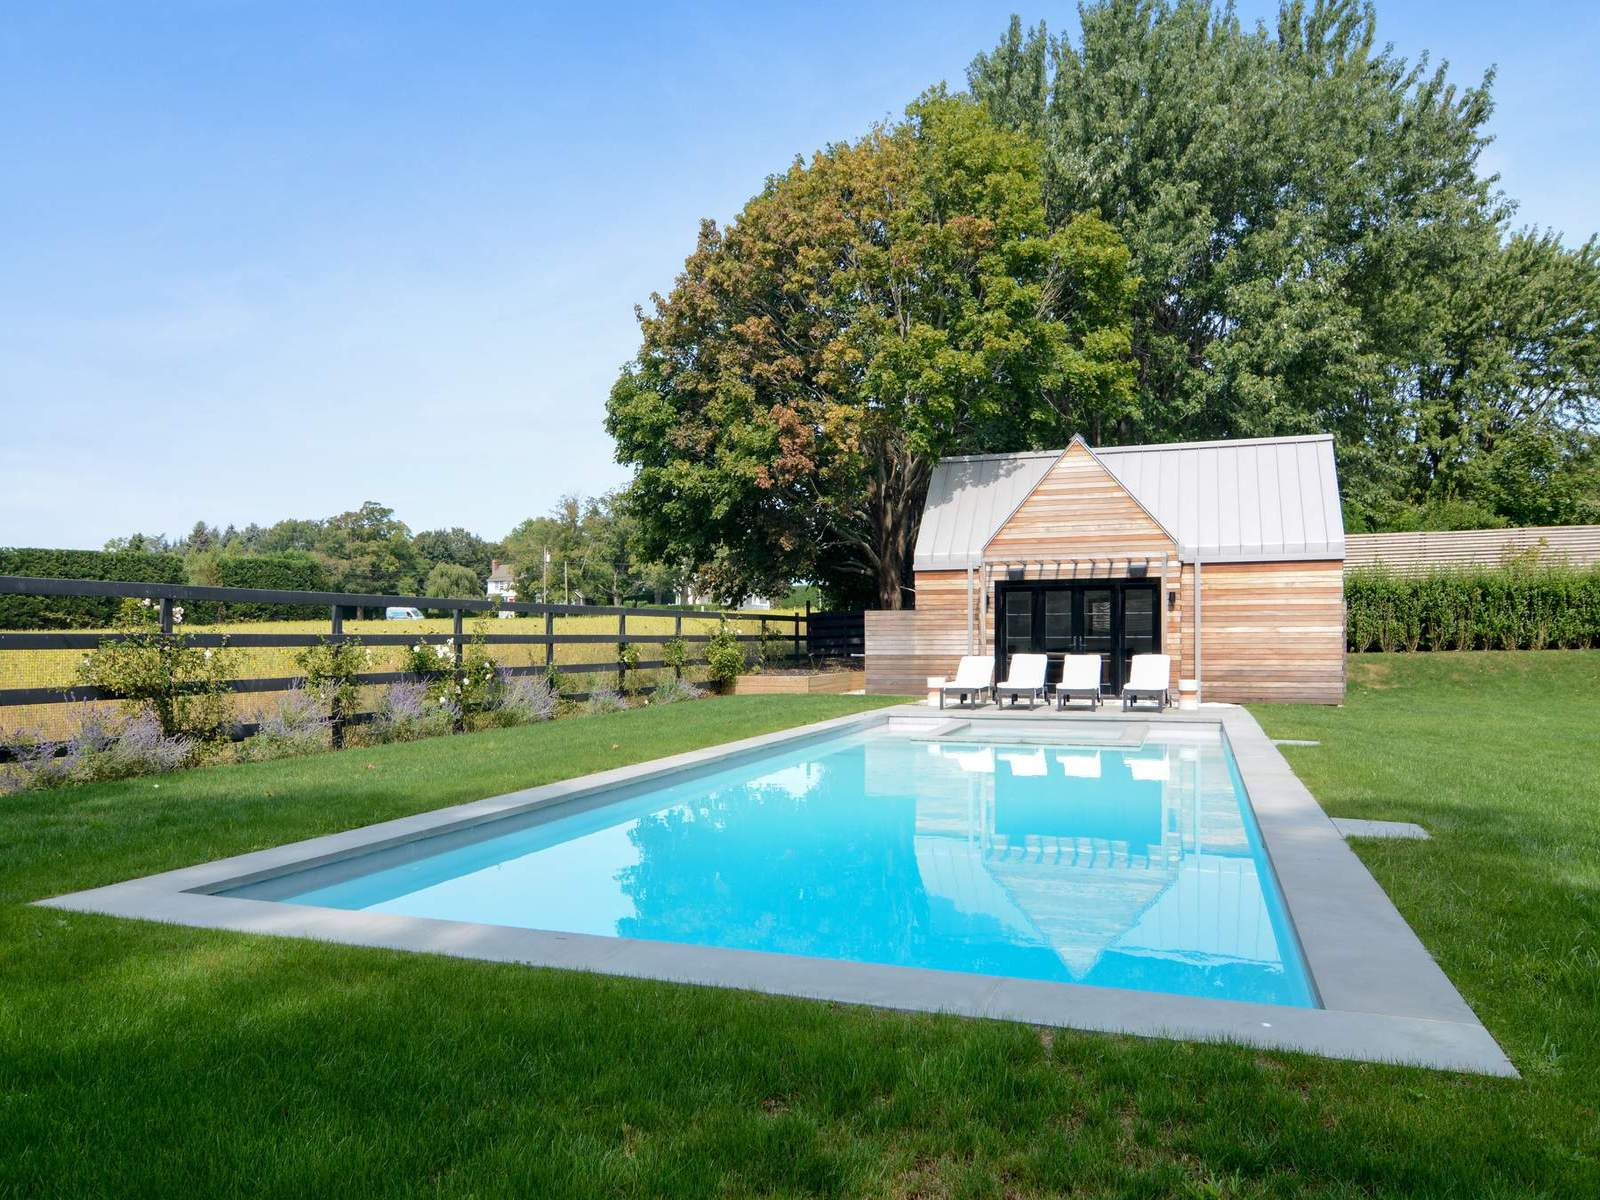 164DeefieldRoad(BHHArchitects)PoolHouse1.jpg